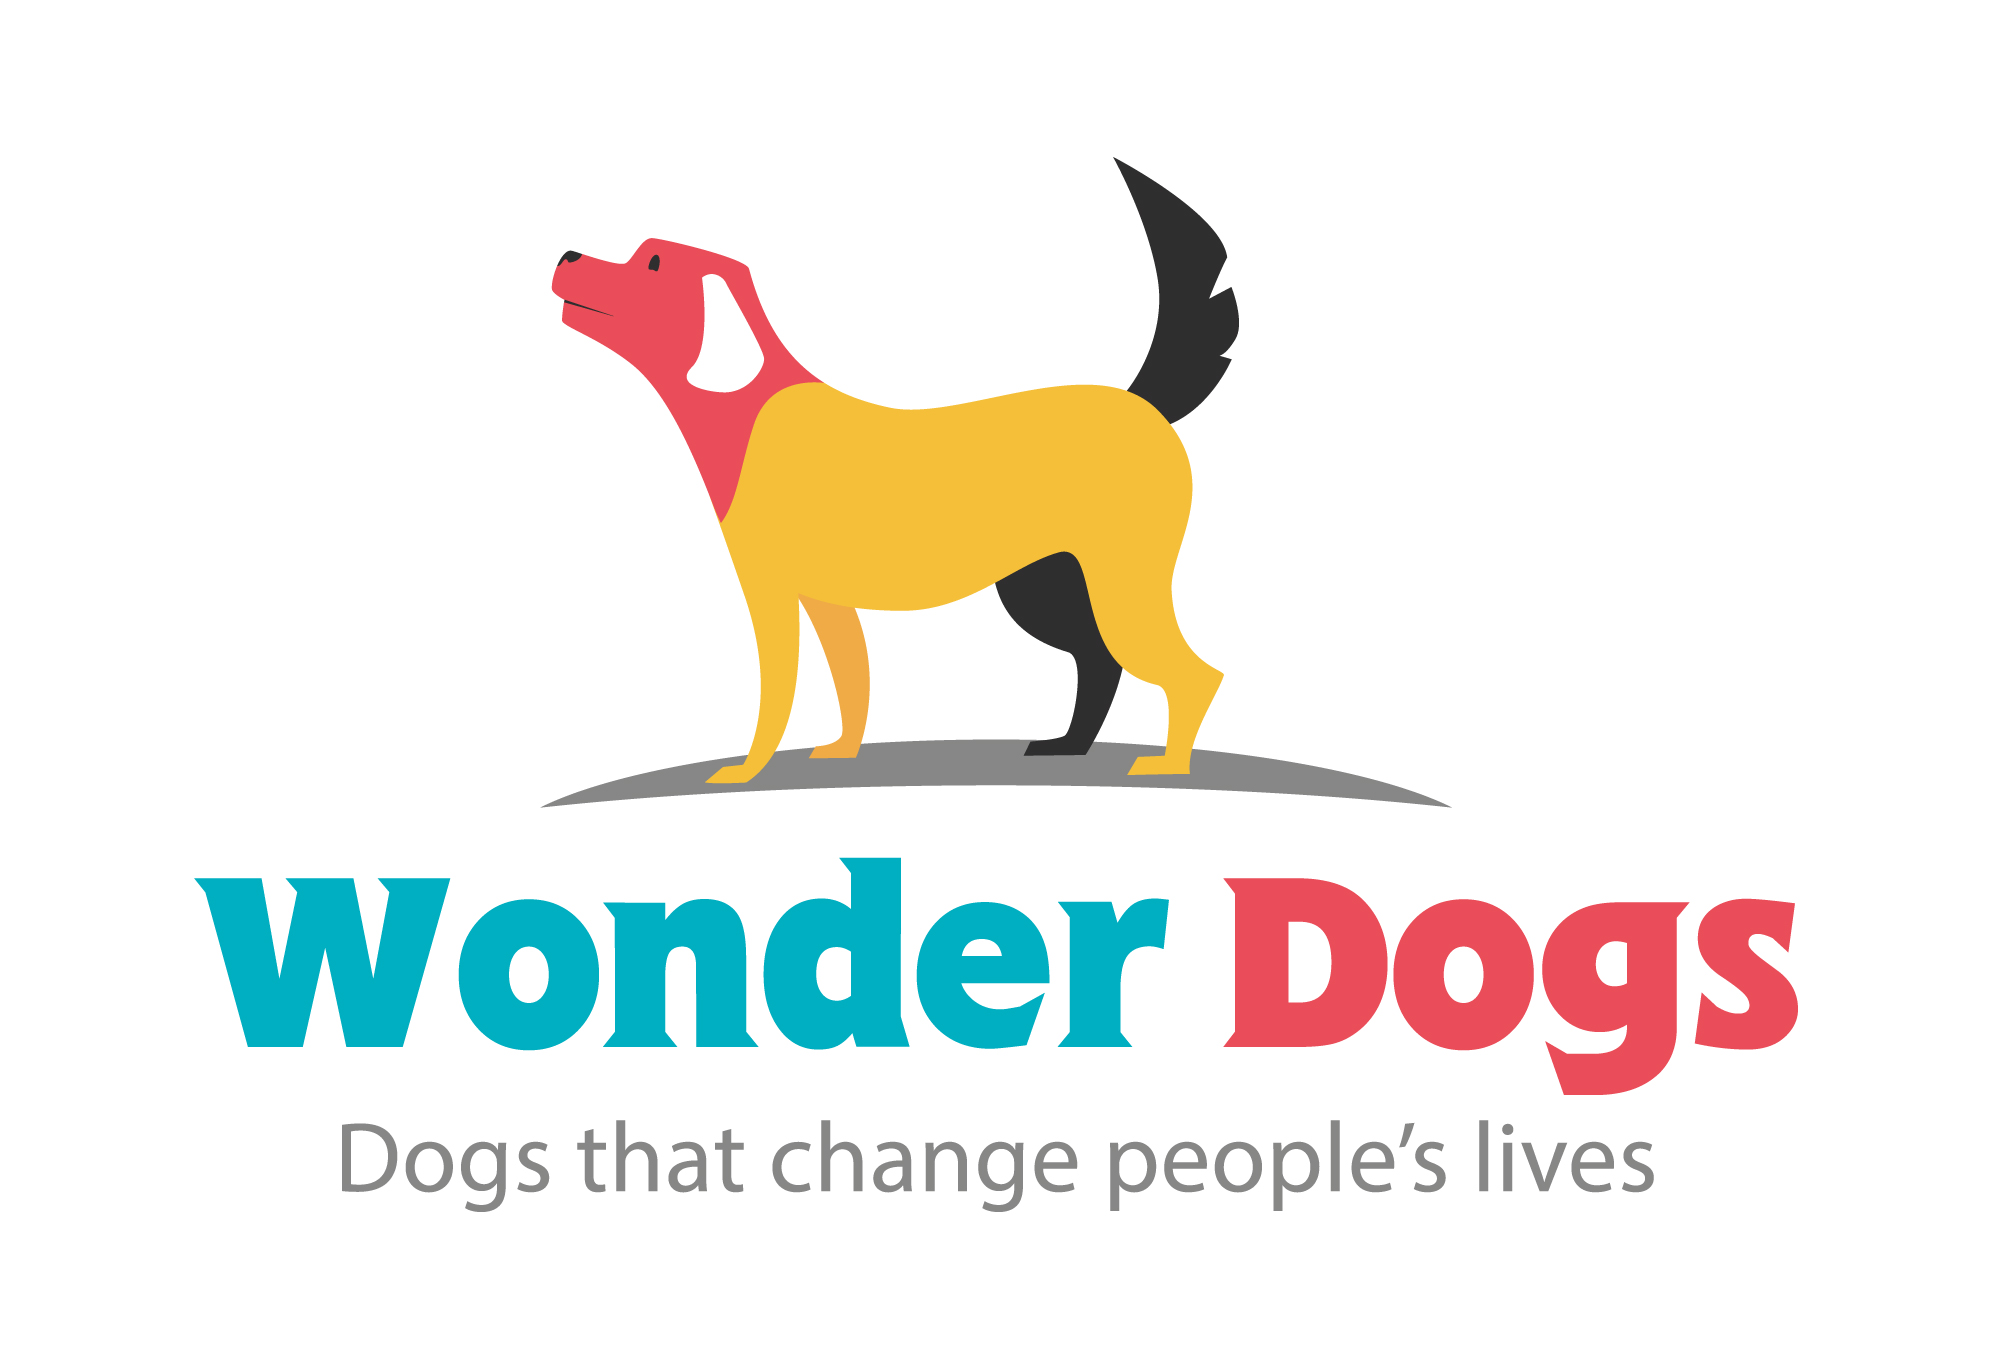 Wonder Dogs: Dogs That Change People's Lives